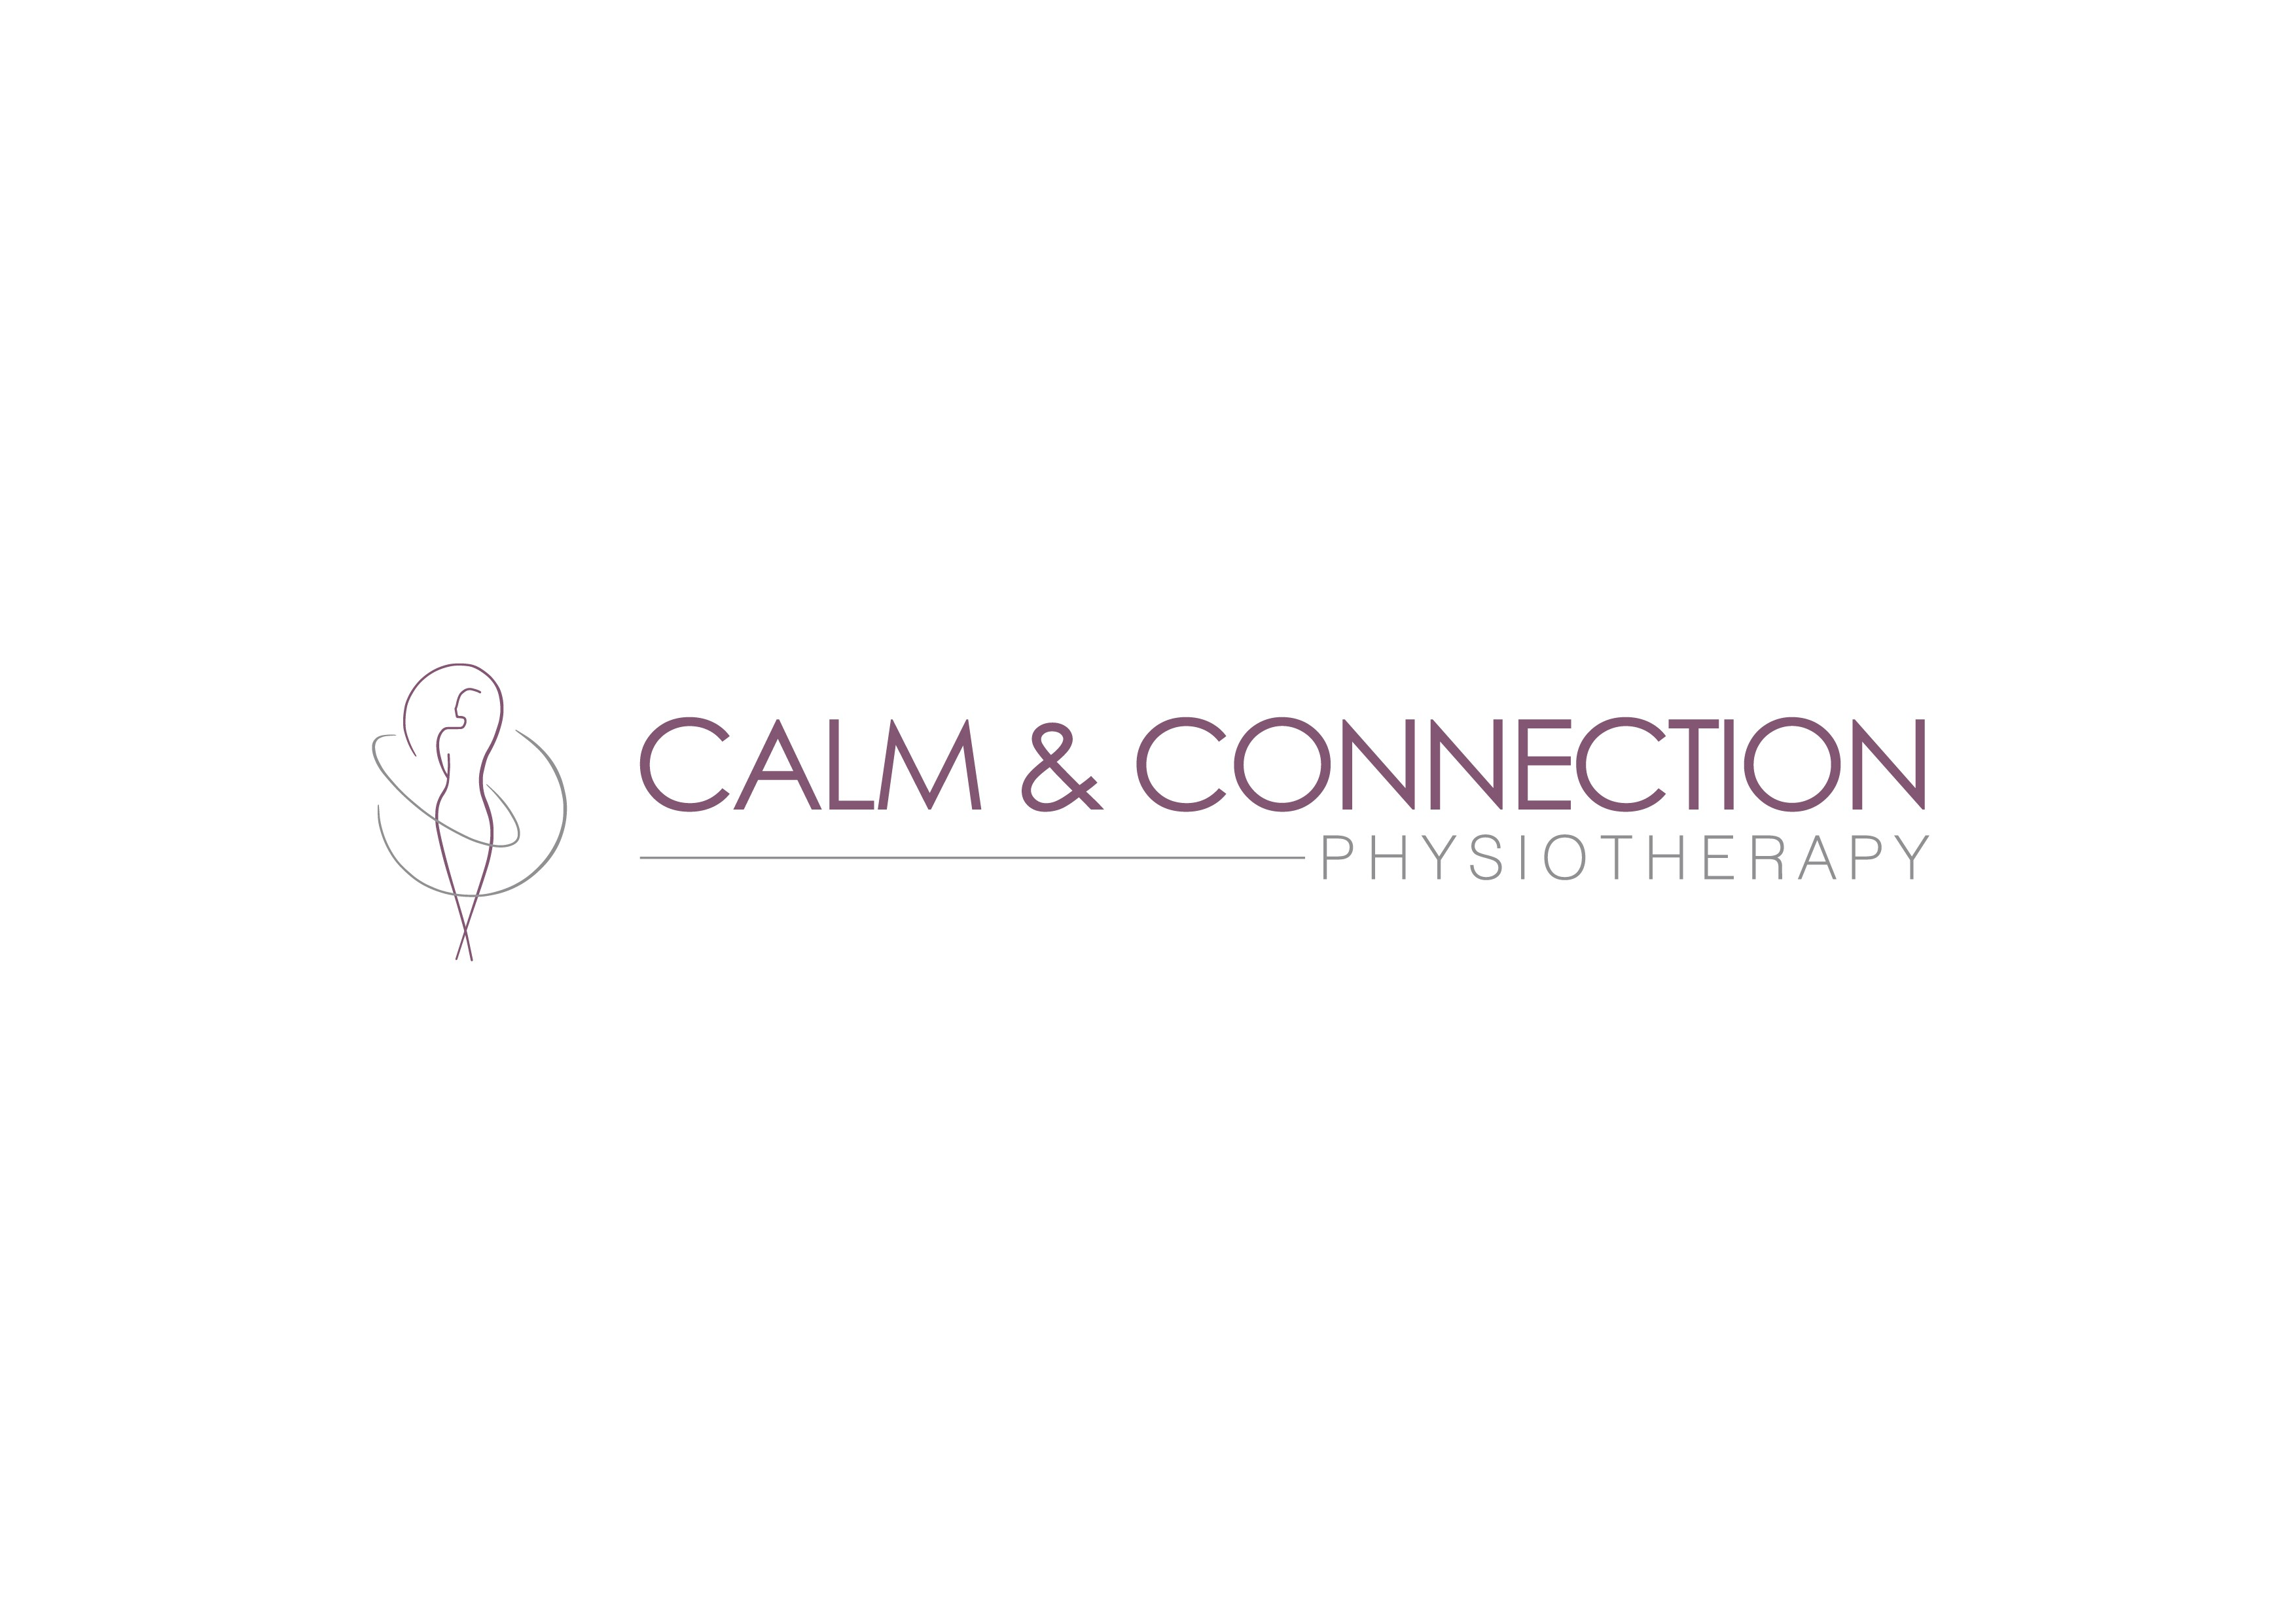 Create a serene yet empowering illustration for Calm & Connection Physiotherapy